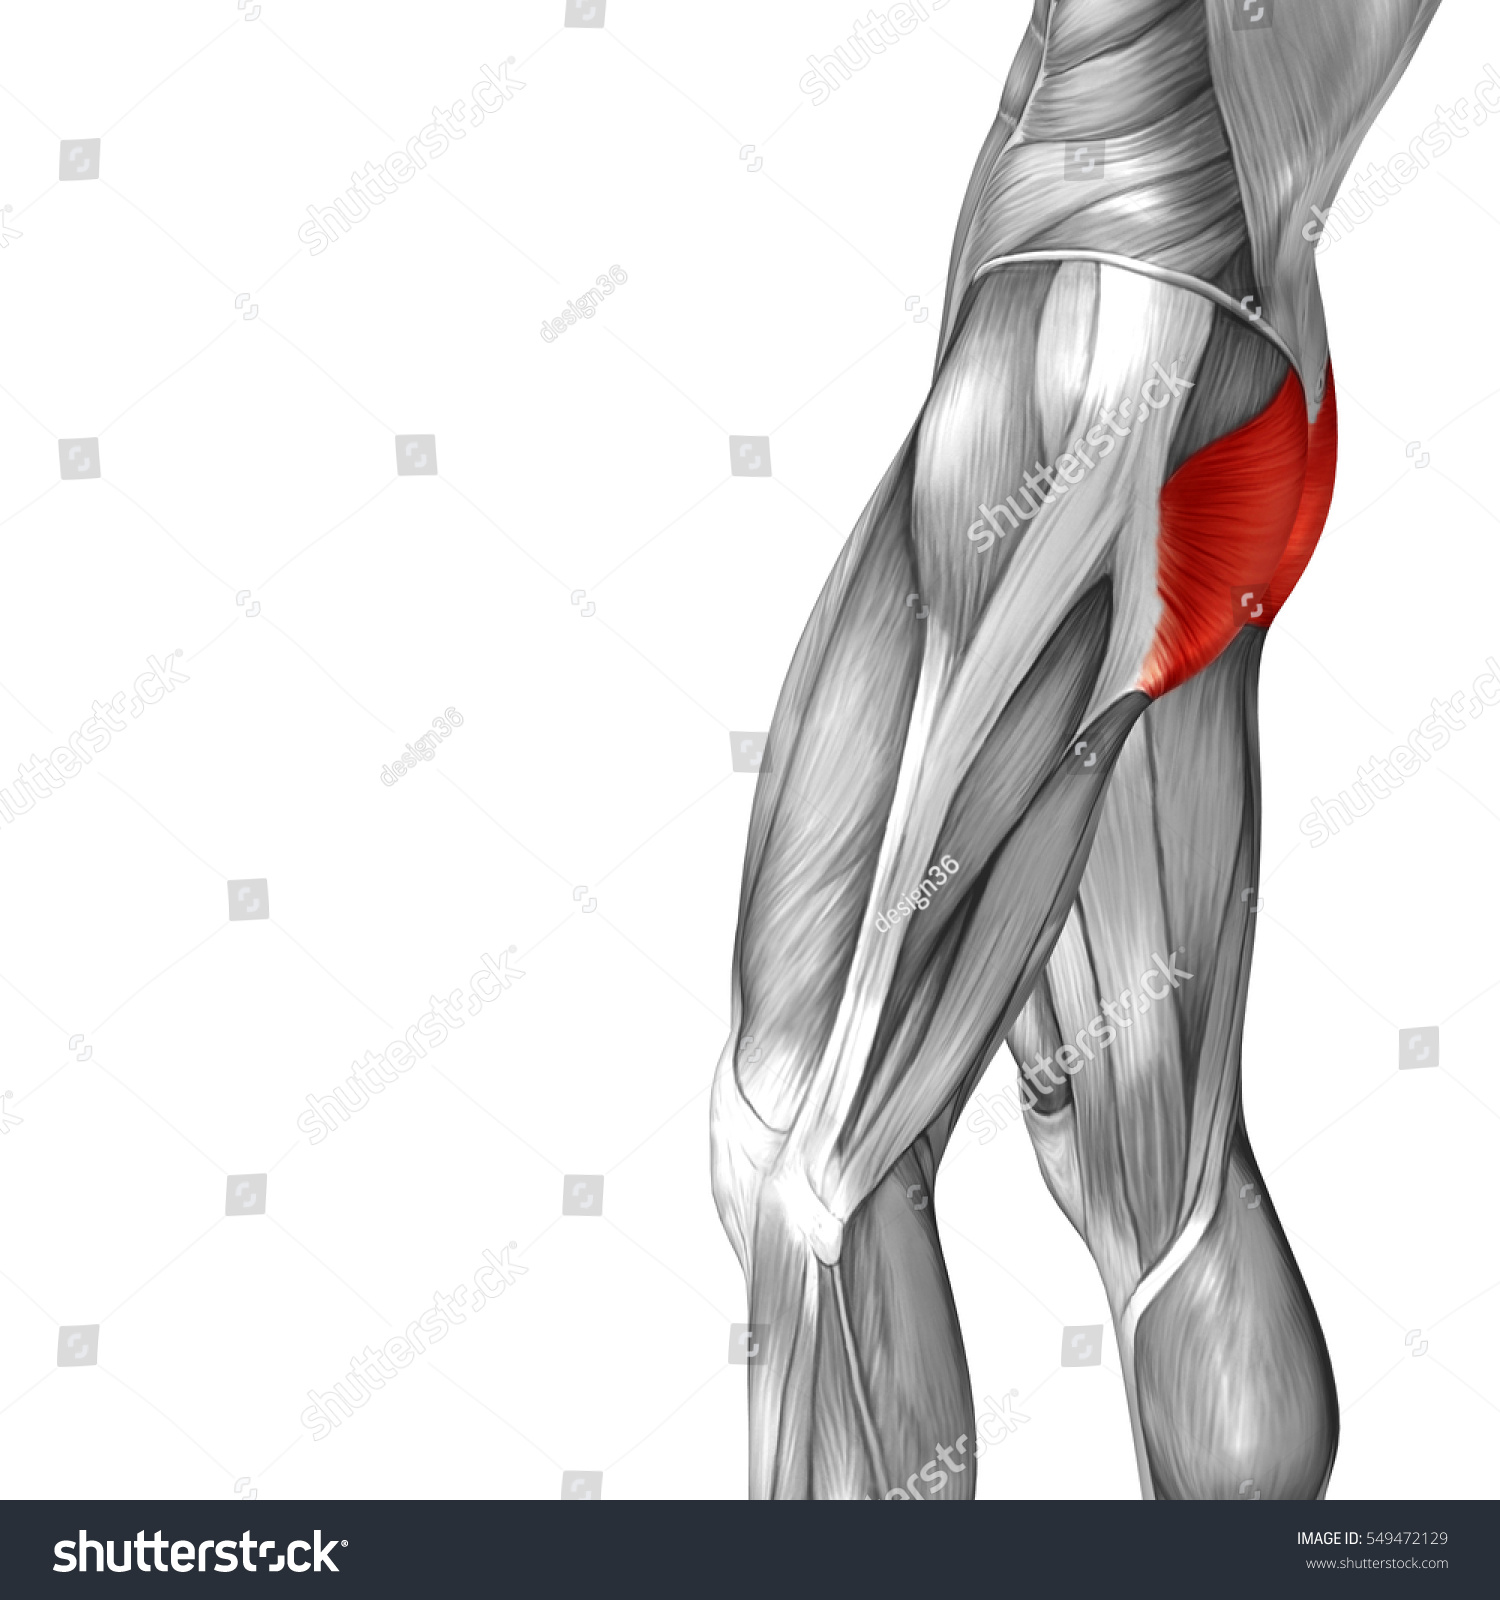 hight resolution of concept conceptual 3d illustration human upper leg anatomy or anatomical and muscle isolated on white background